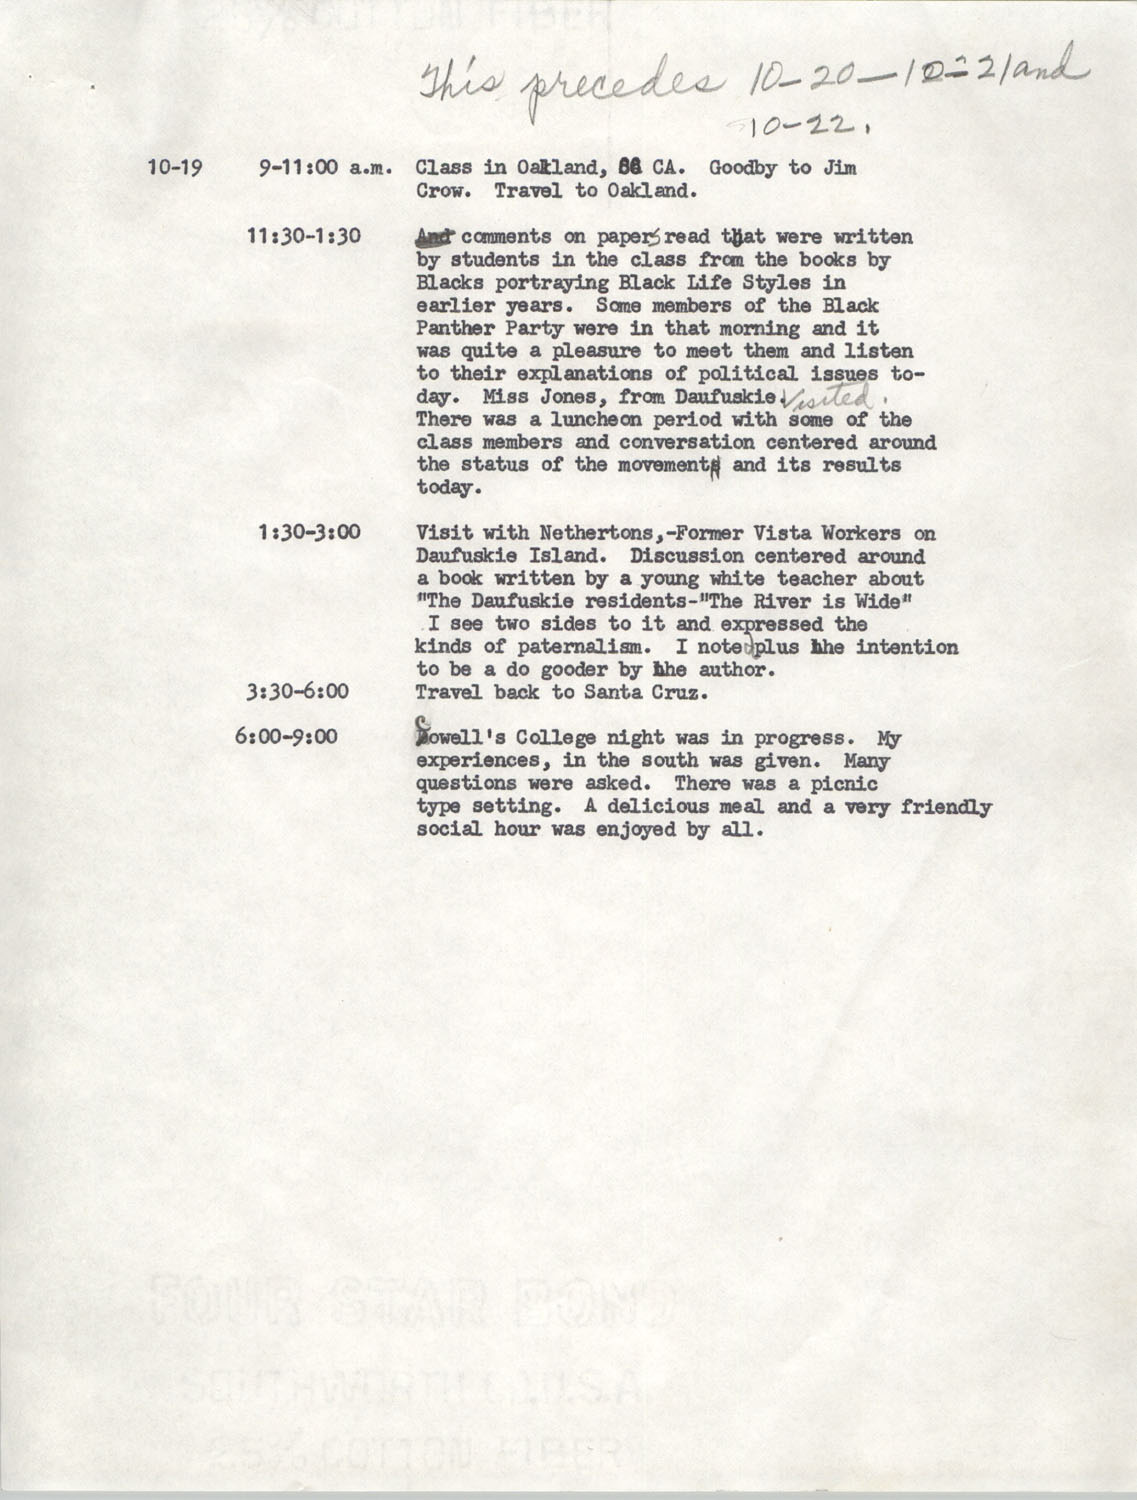 Schedule for Sojourn in Santa Cruz, College Seven, October 8 to November 1, 1972, Page 3